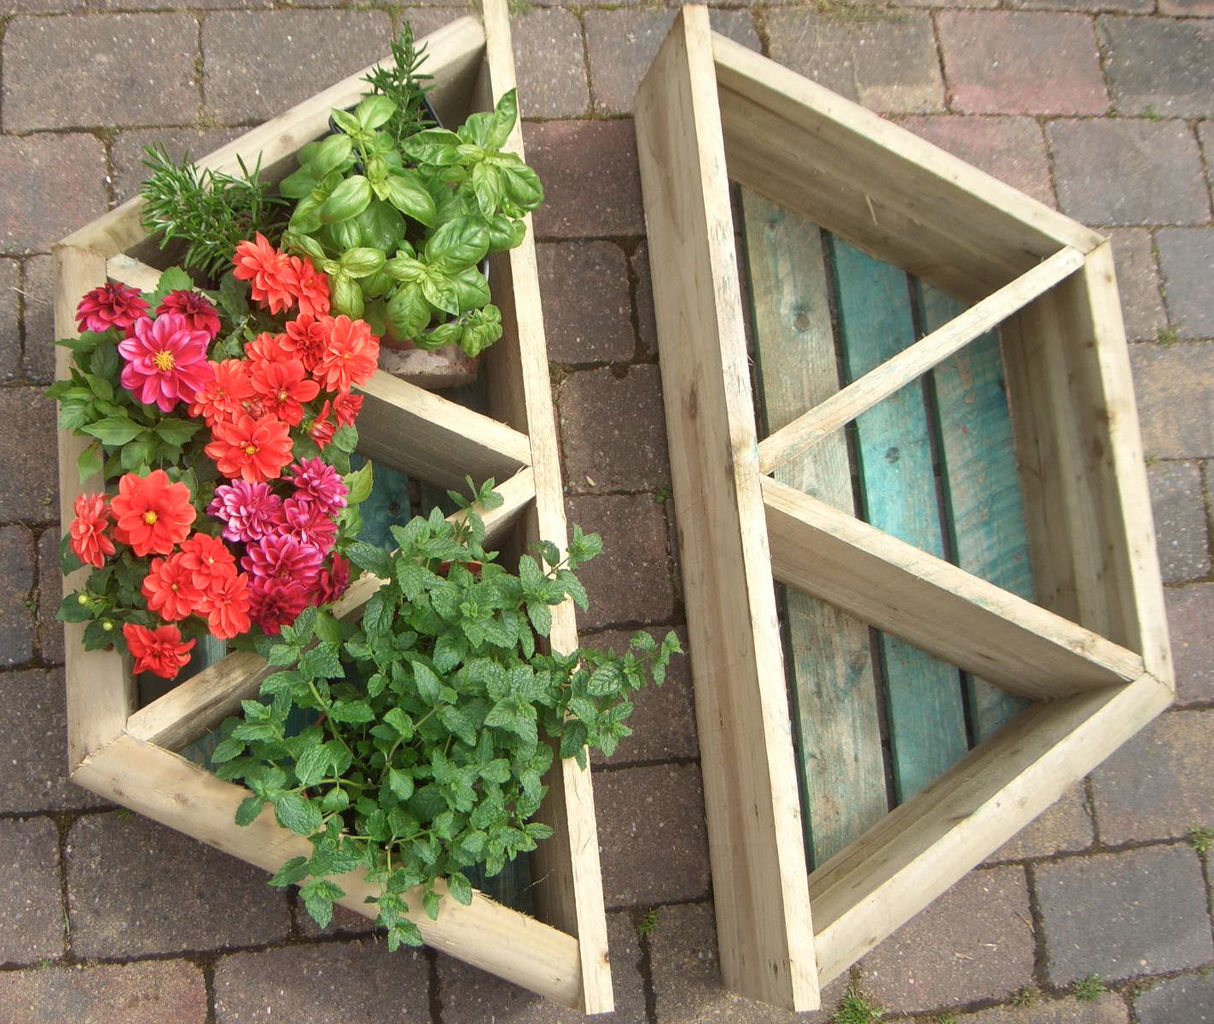 High Quality Handmade Wooden Planters